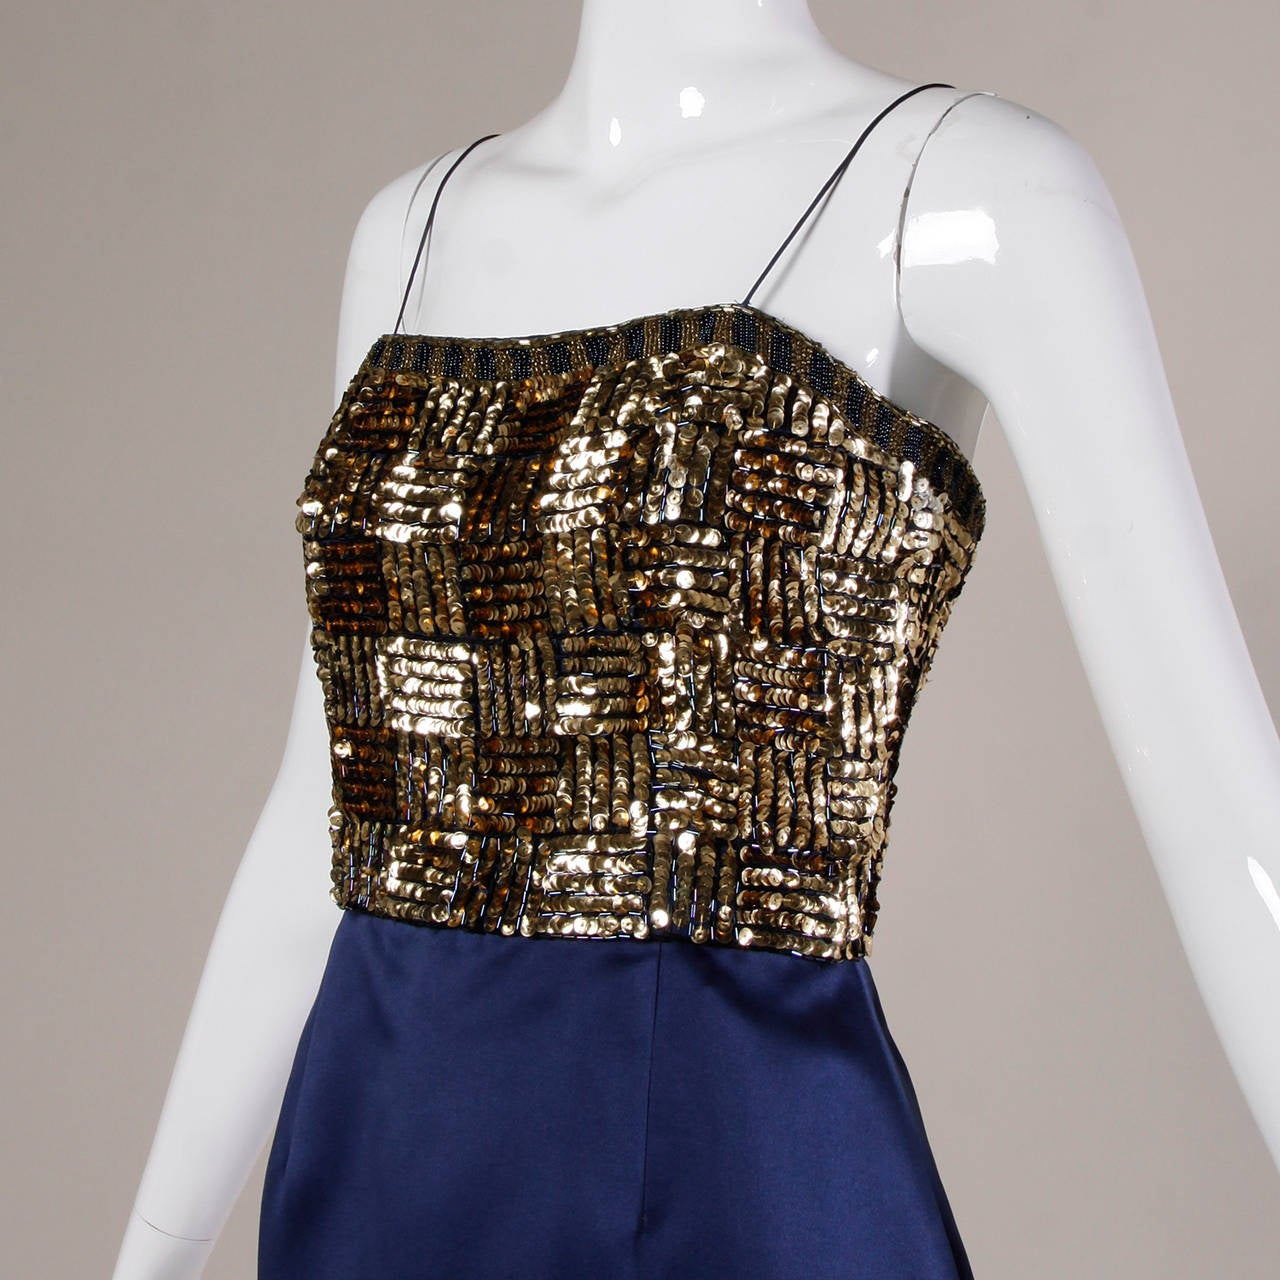 Vintage blue satin cocktail dress with metallic gold sequin and beaded bodice by Bill Blass.